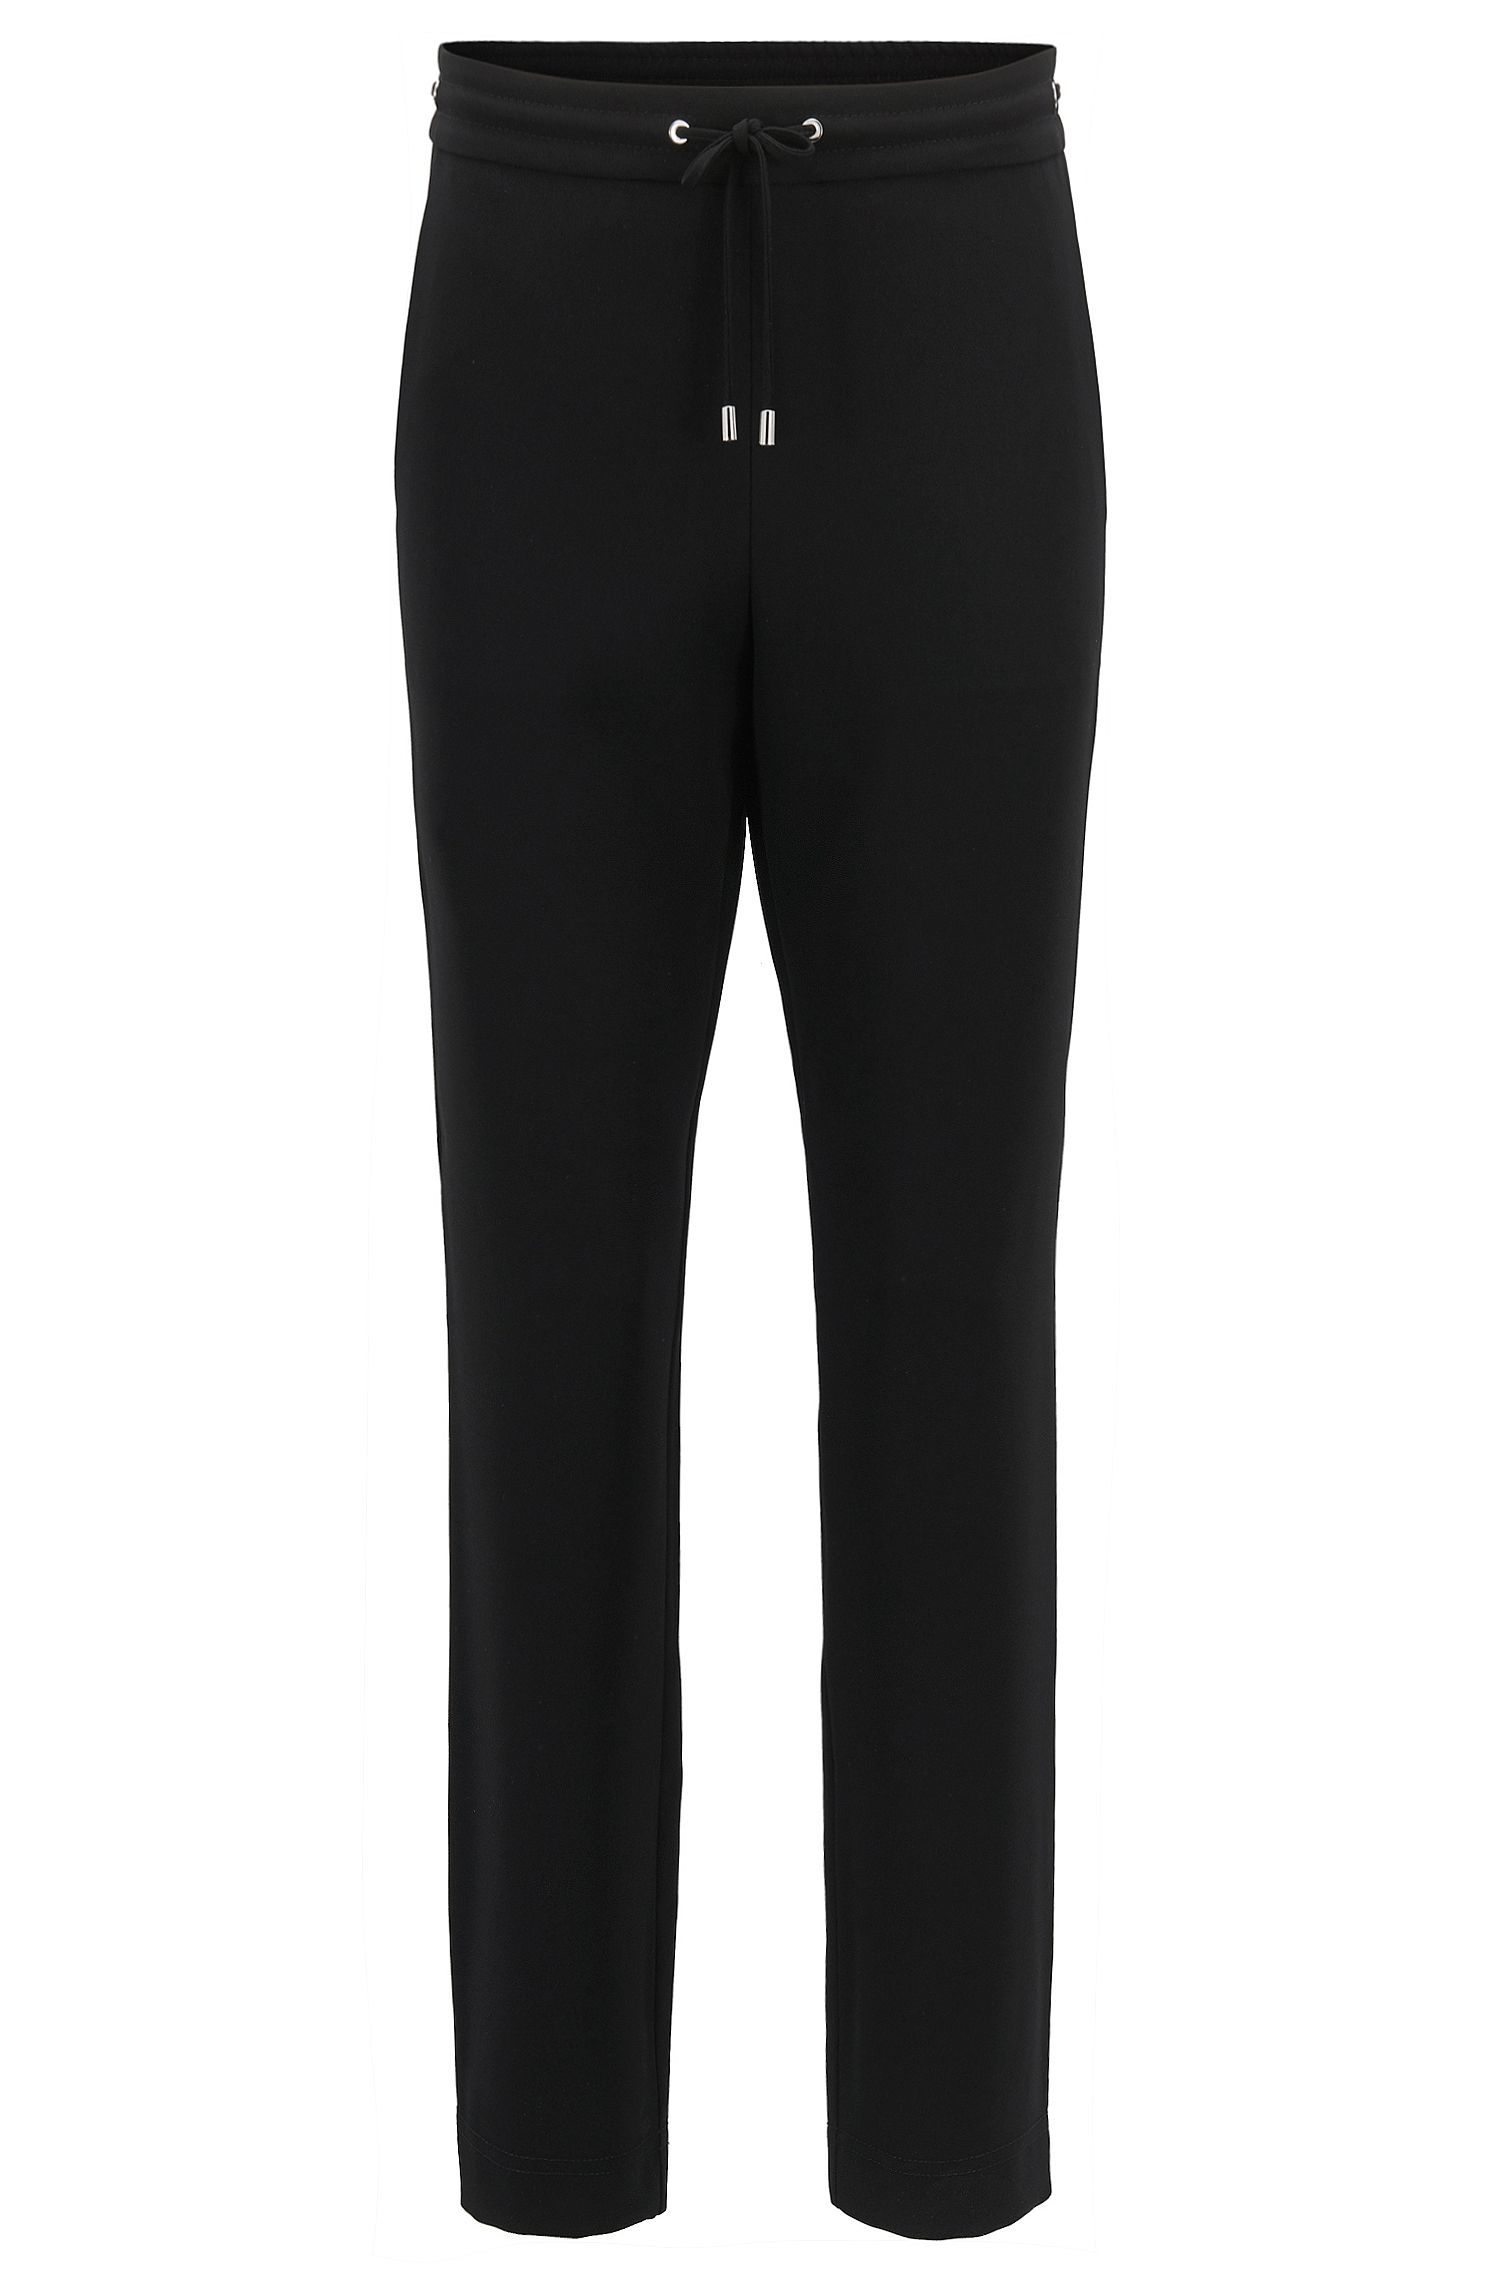 Athleisure-inspired cropped trousers in technical crêpe